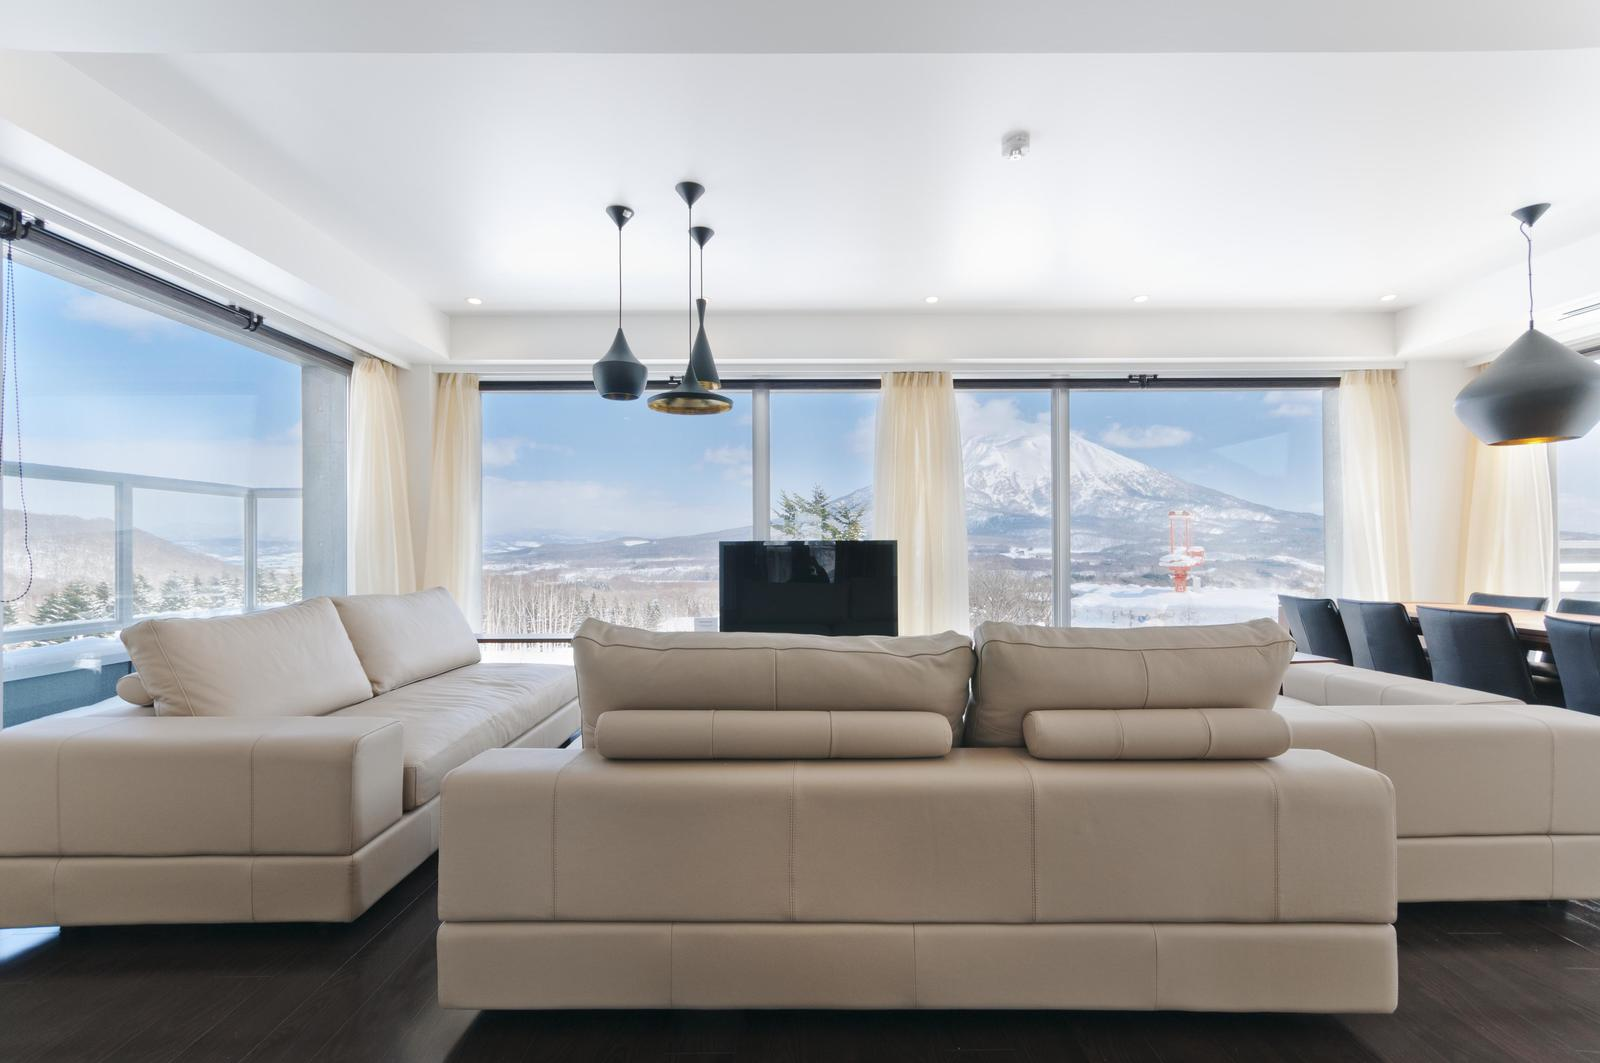 Kizuna 3 bedroom penthouse apartment 601 livi large